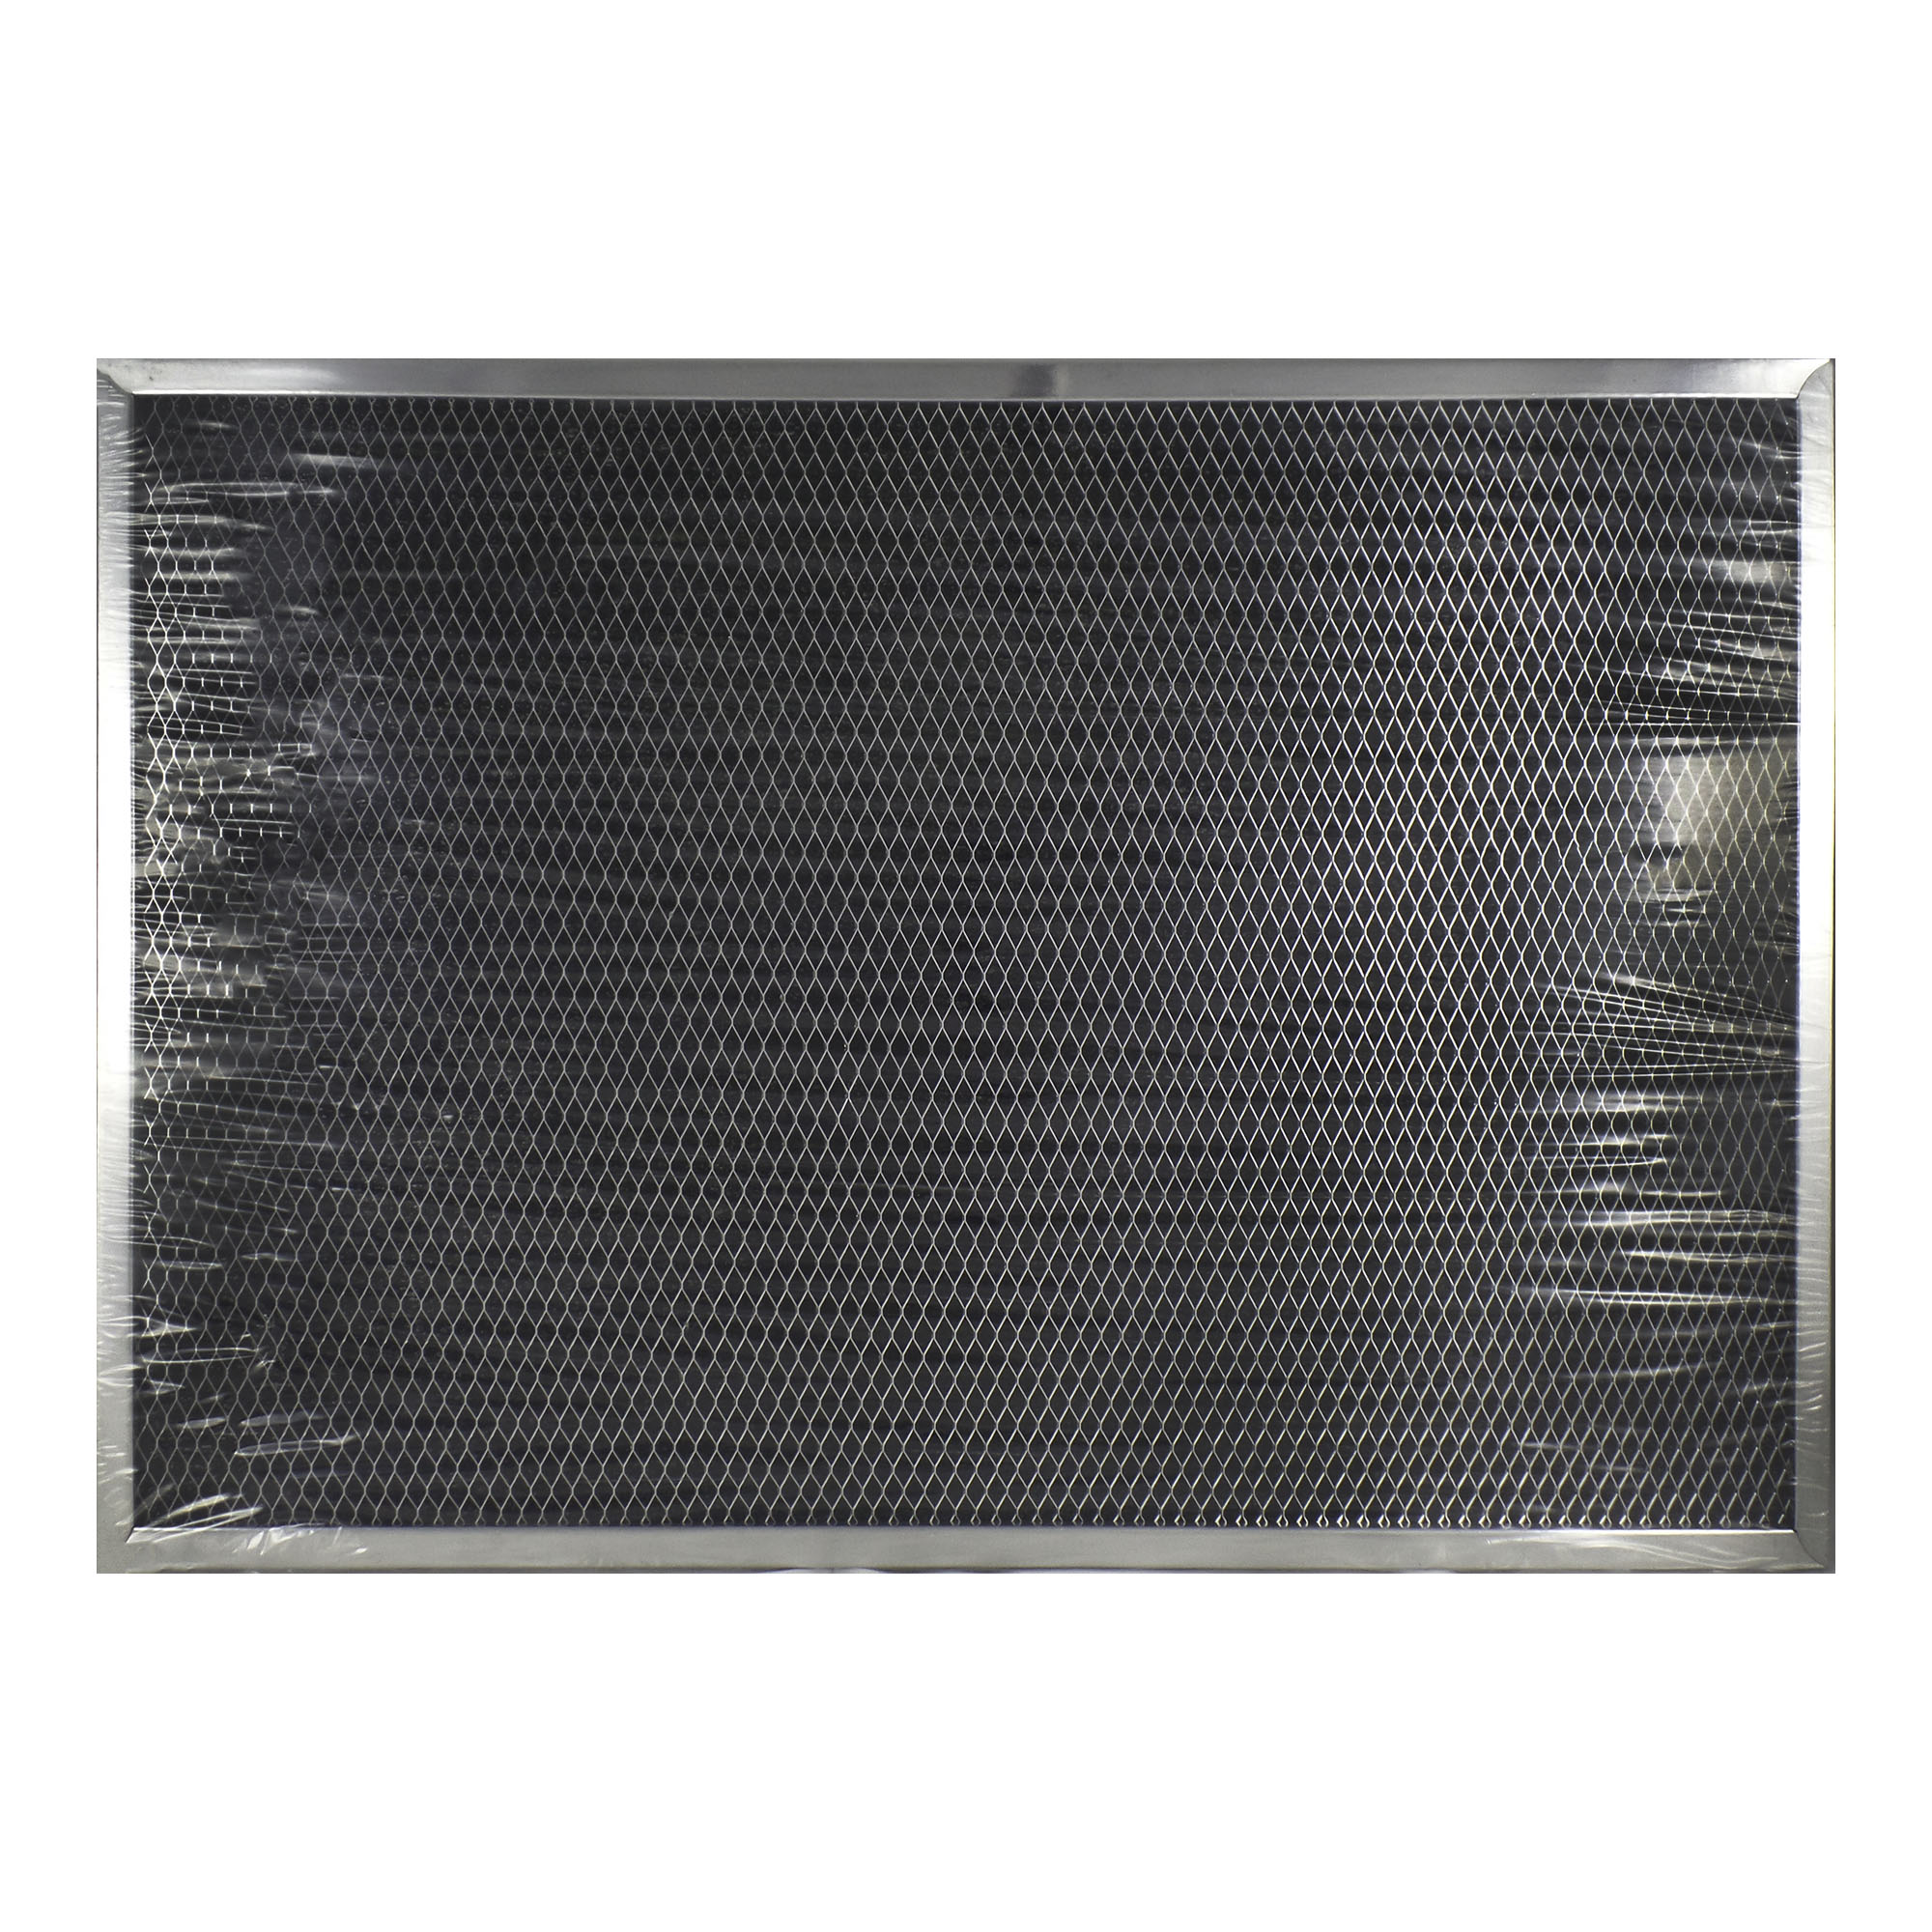 Whirlpool 261836 Charcoal Carbon Range Hood Filter Replacement